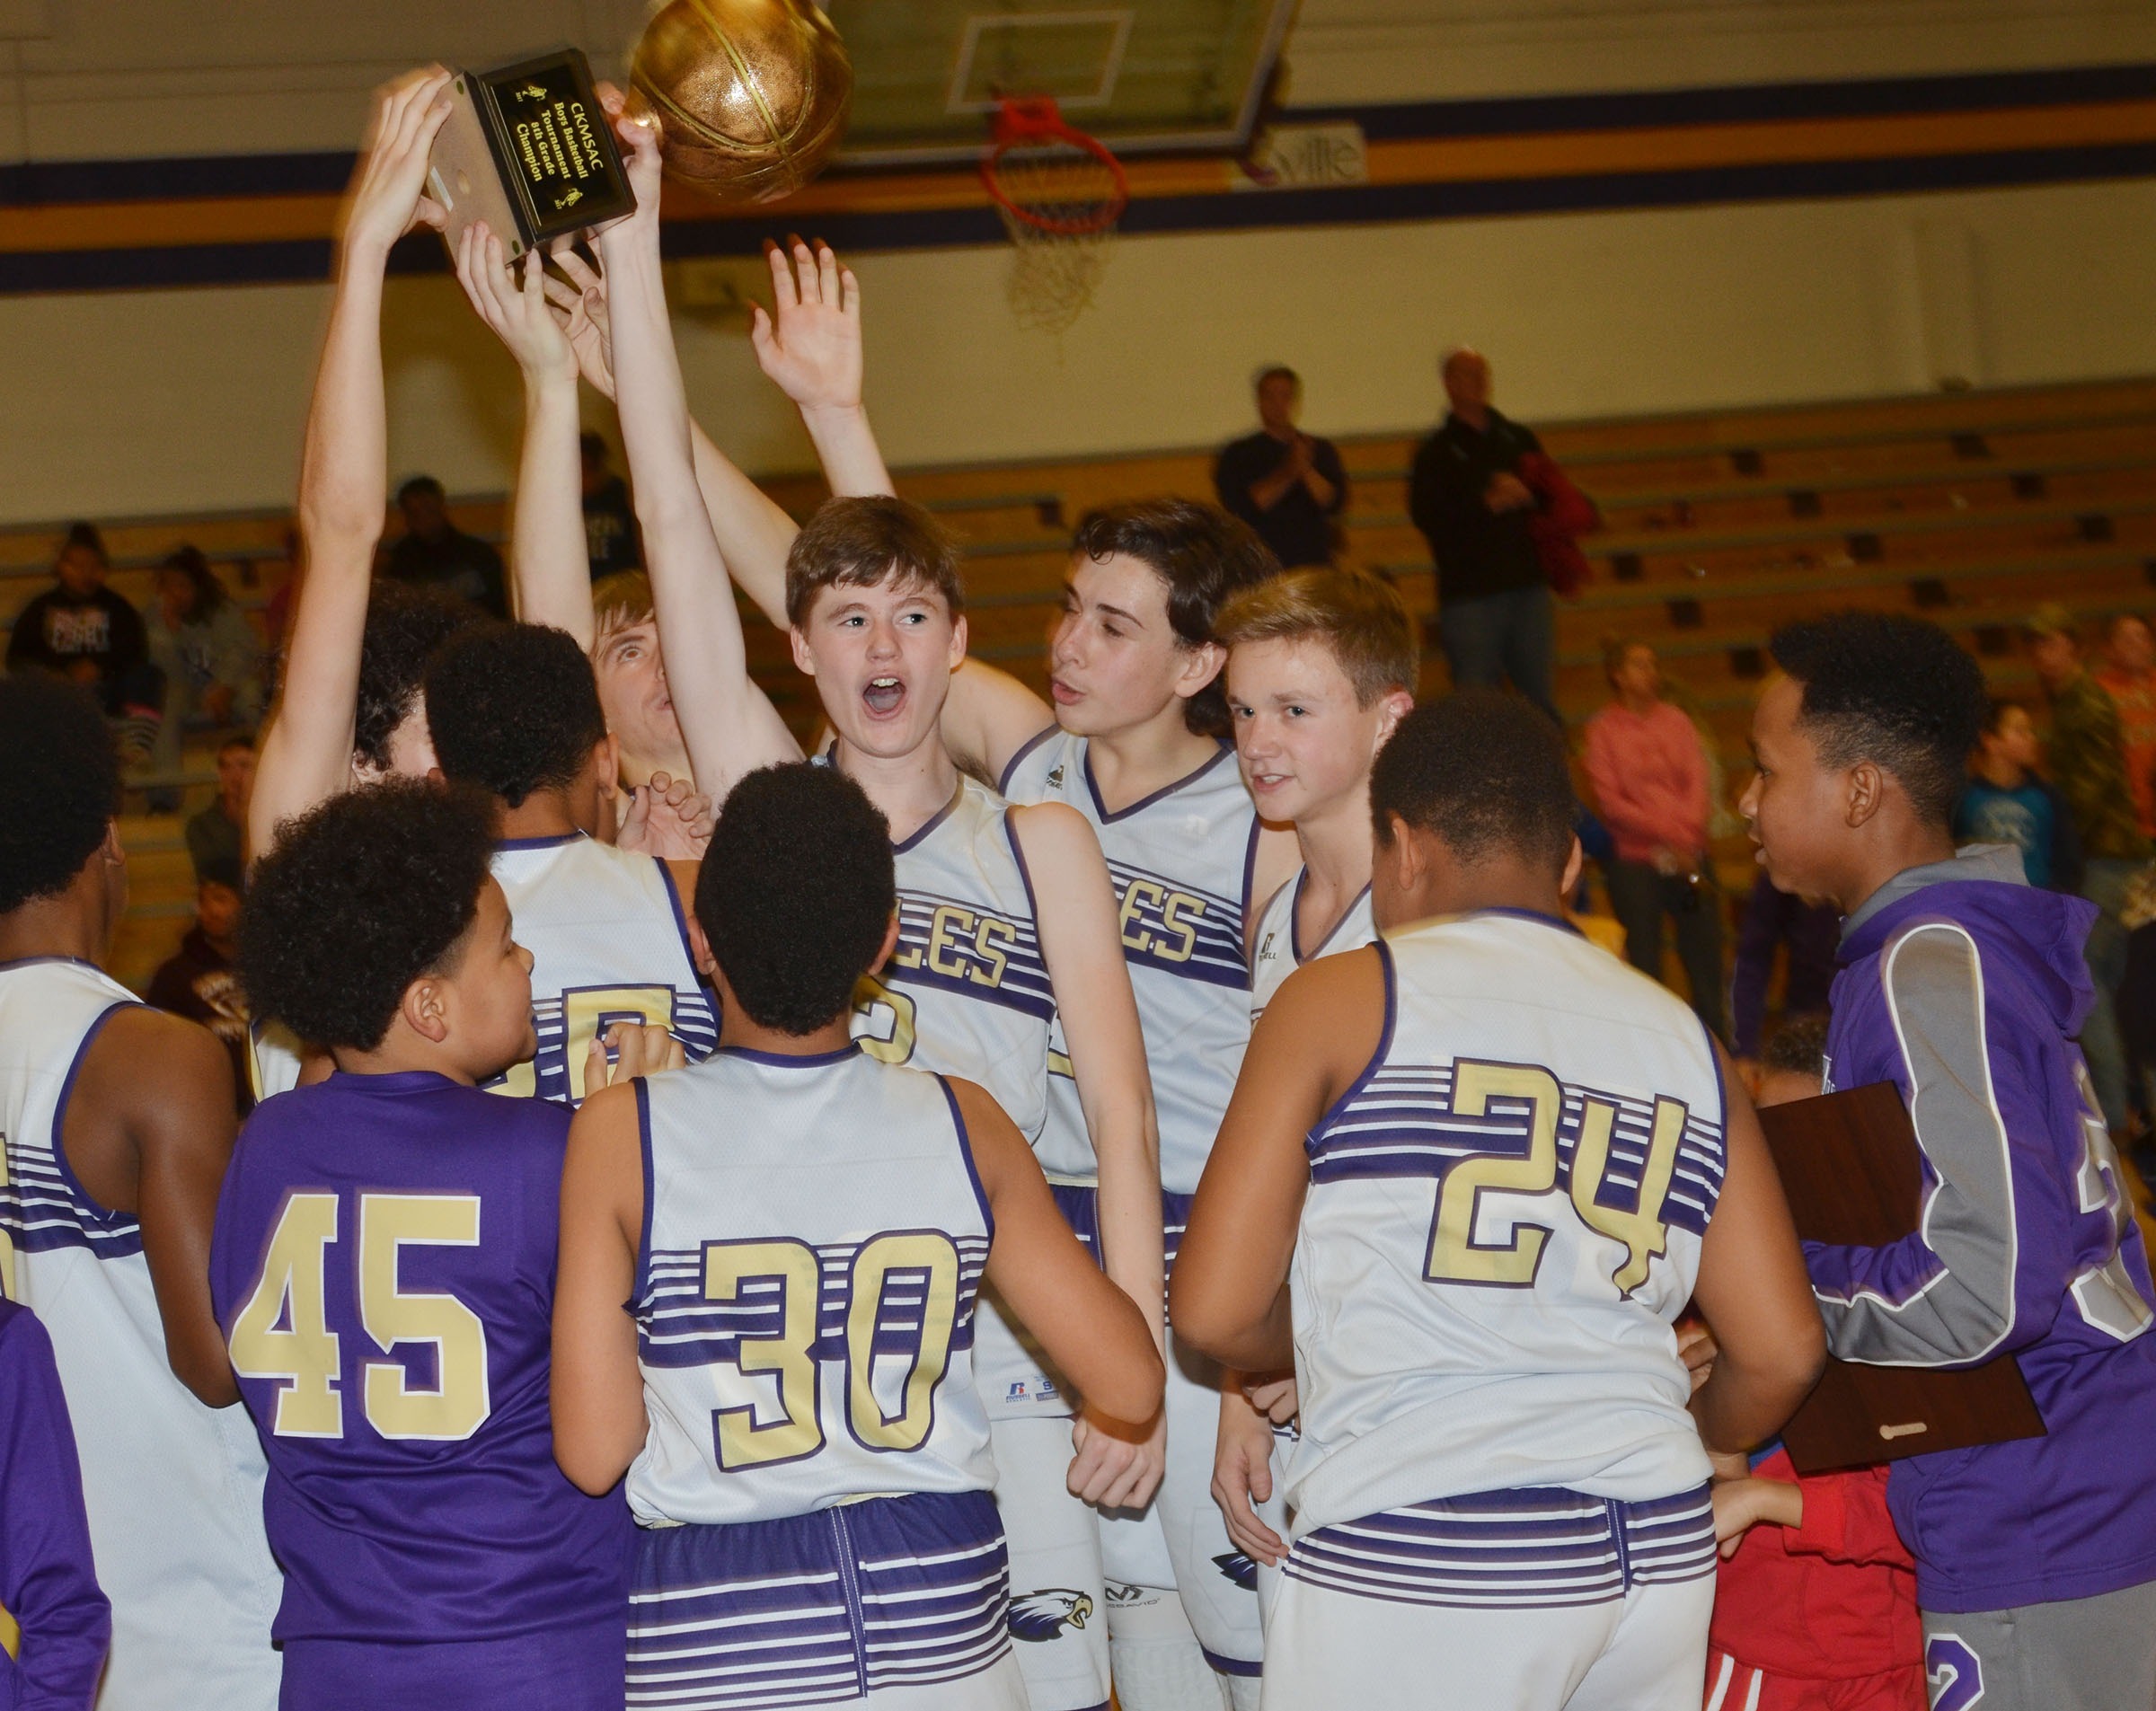 CMS eighth-grader Tristin Faulkner and his teammates hold the CKMSAC tournament championship trophy high.